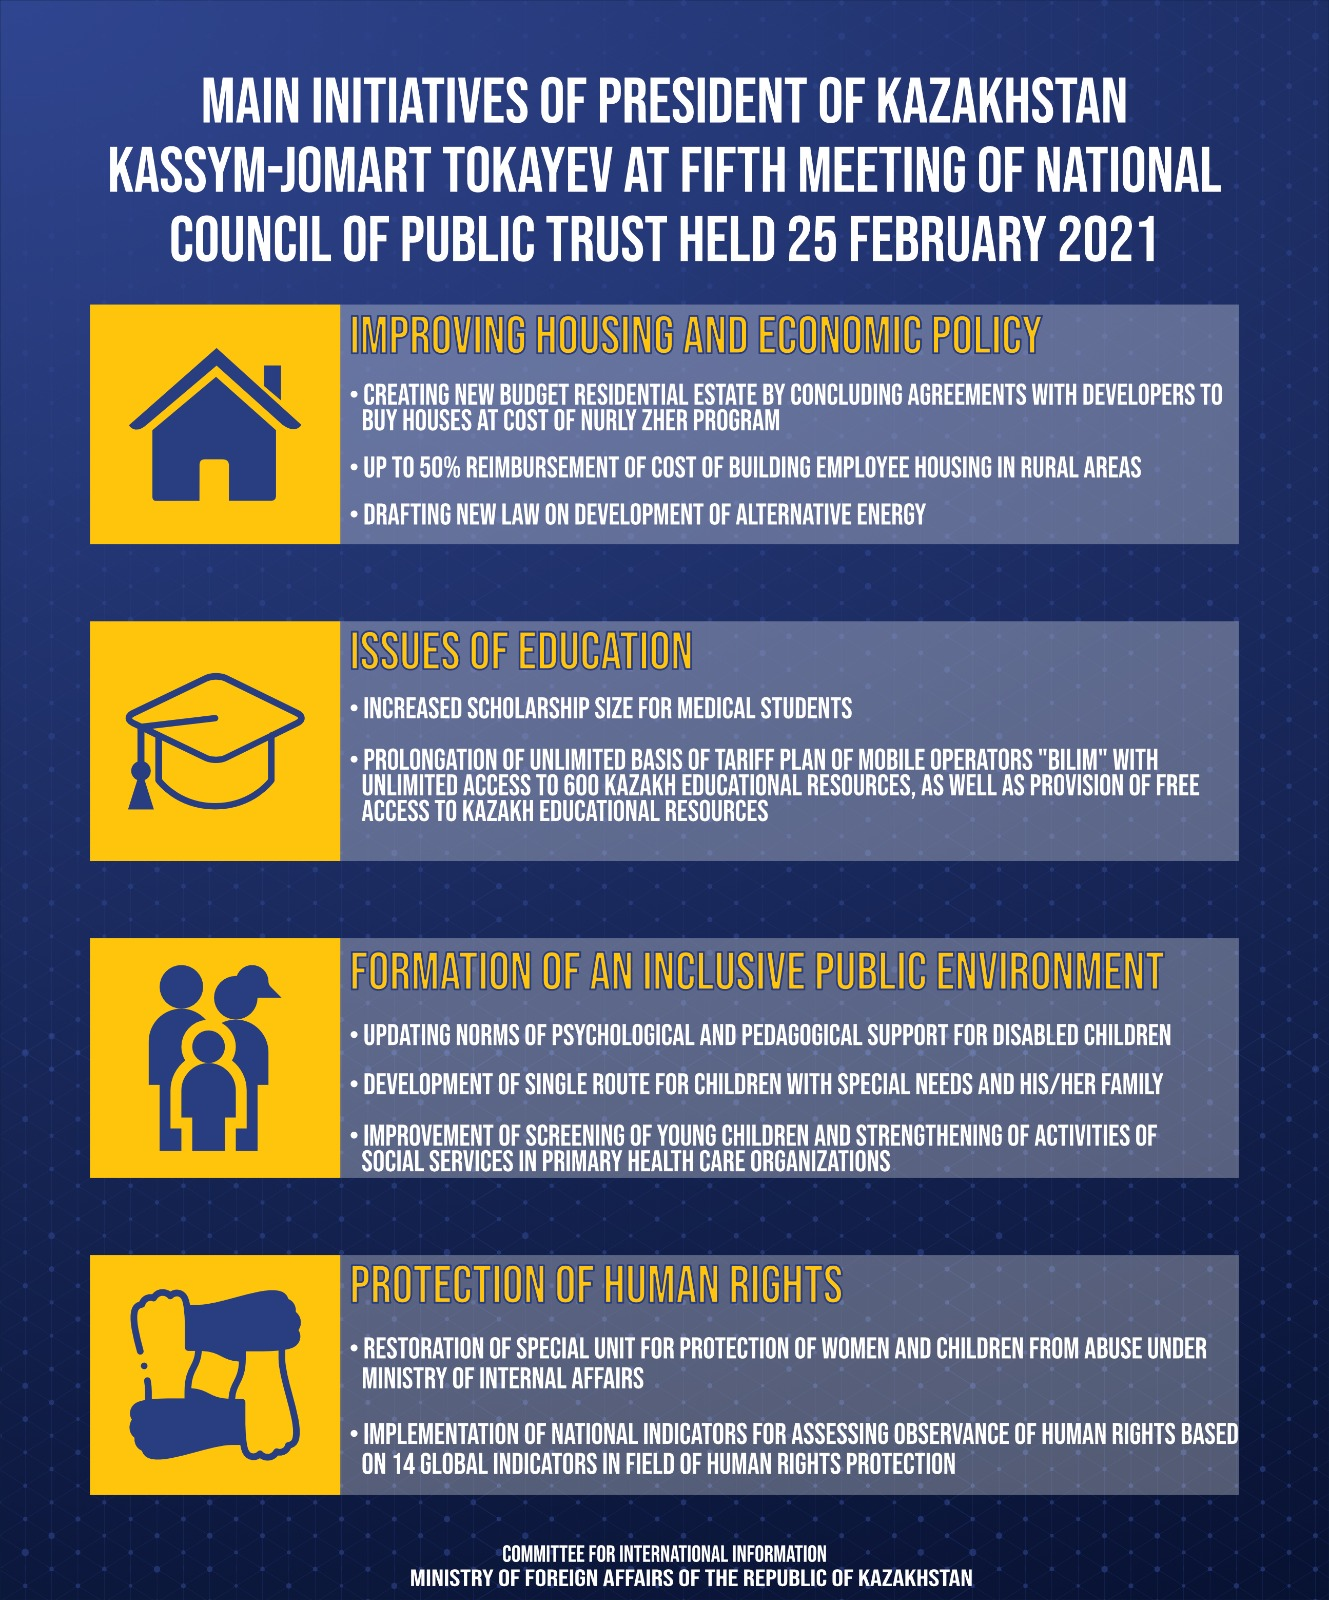 MAIN INITIATIVES OF THE PRESIDENT OF KAZAKHSTAN  KASSYM-JOMART TOKAYEV AT THE FIFTH MEETING OF THE NATIONAL COUNCIL OF PUBLIC TRUST HELD 25 FEBRUARY 2021